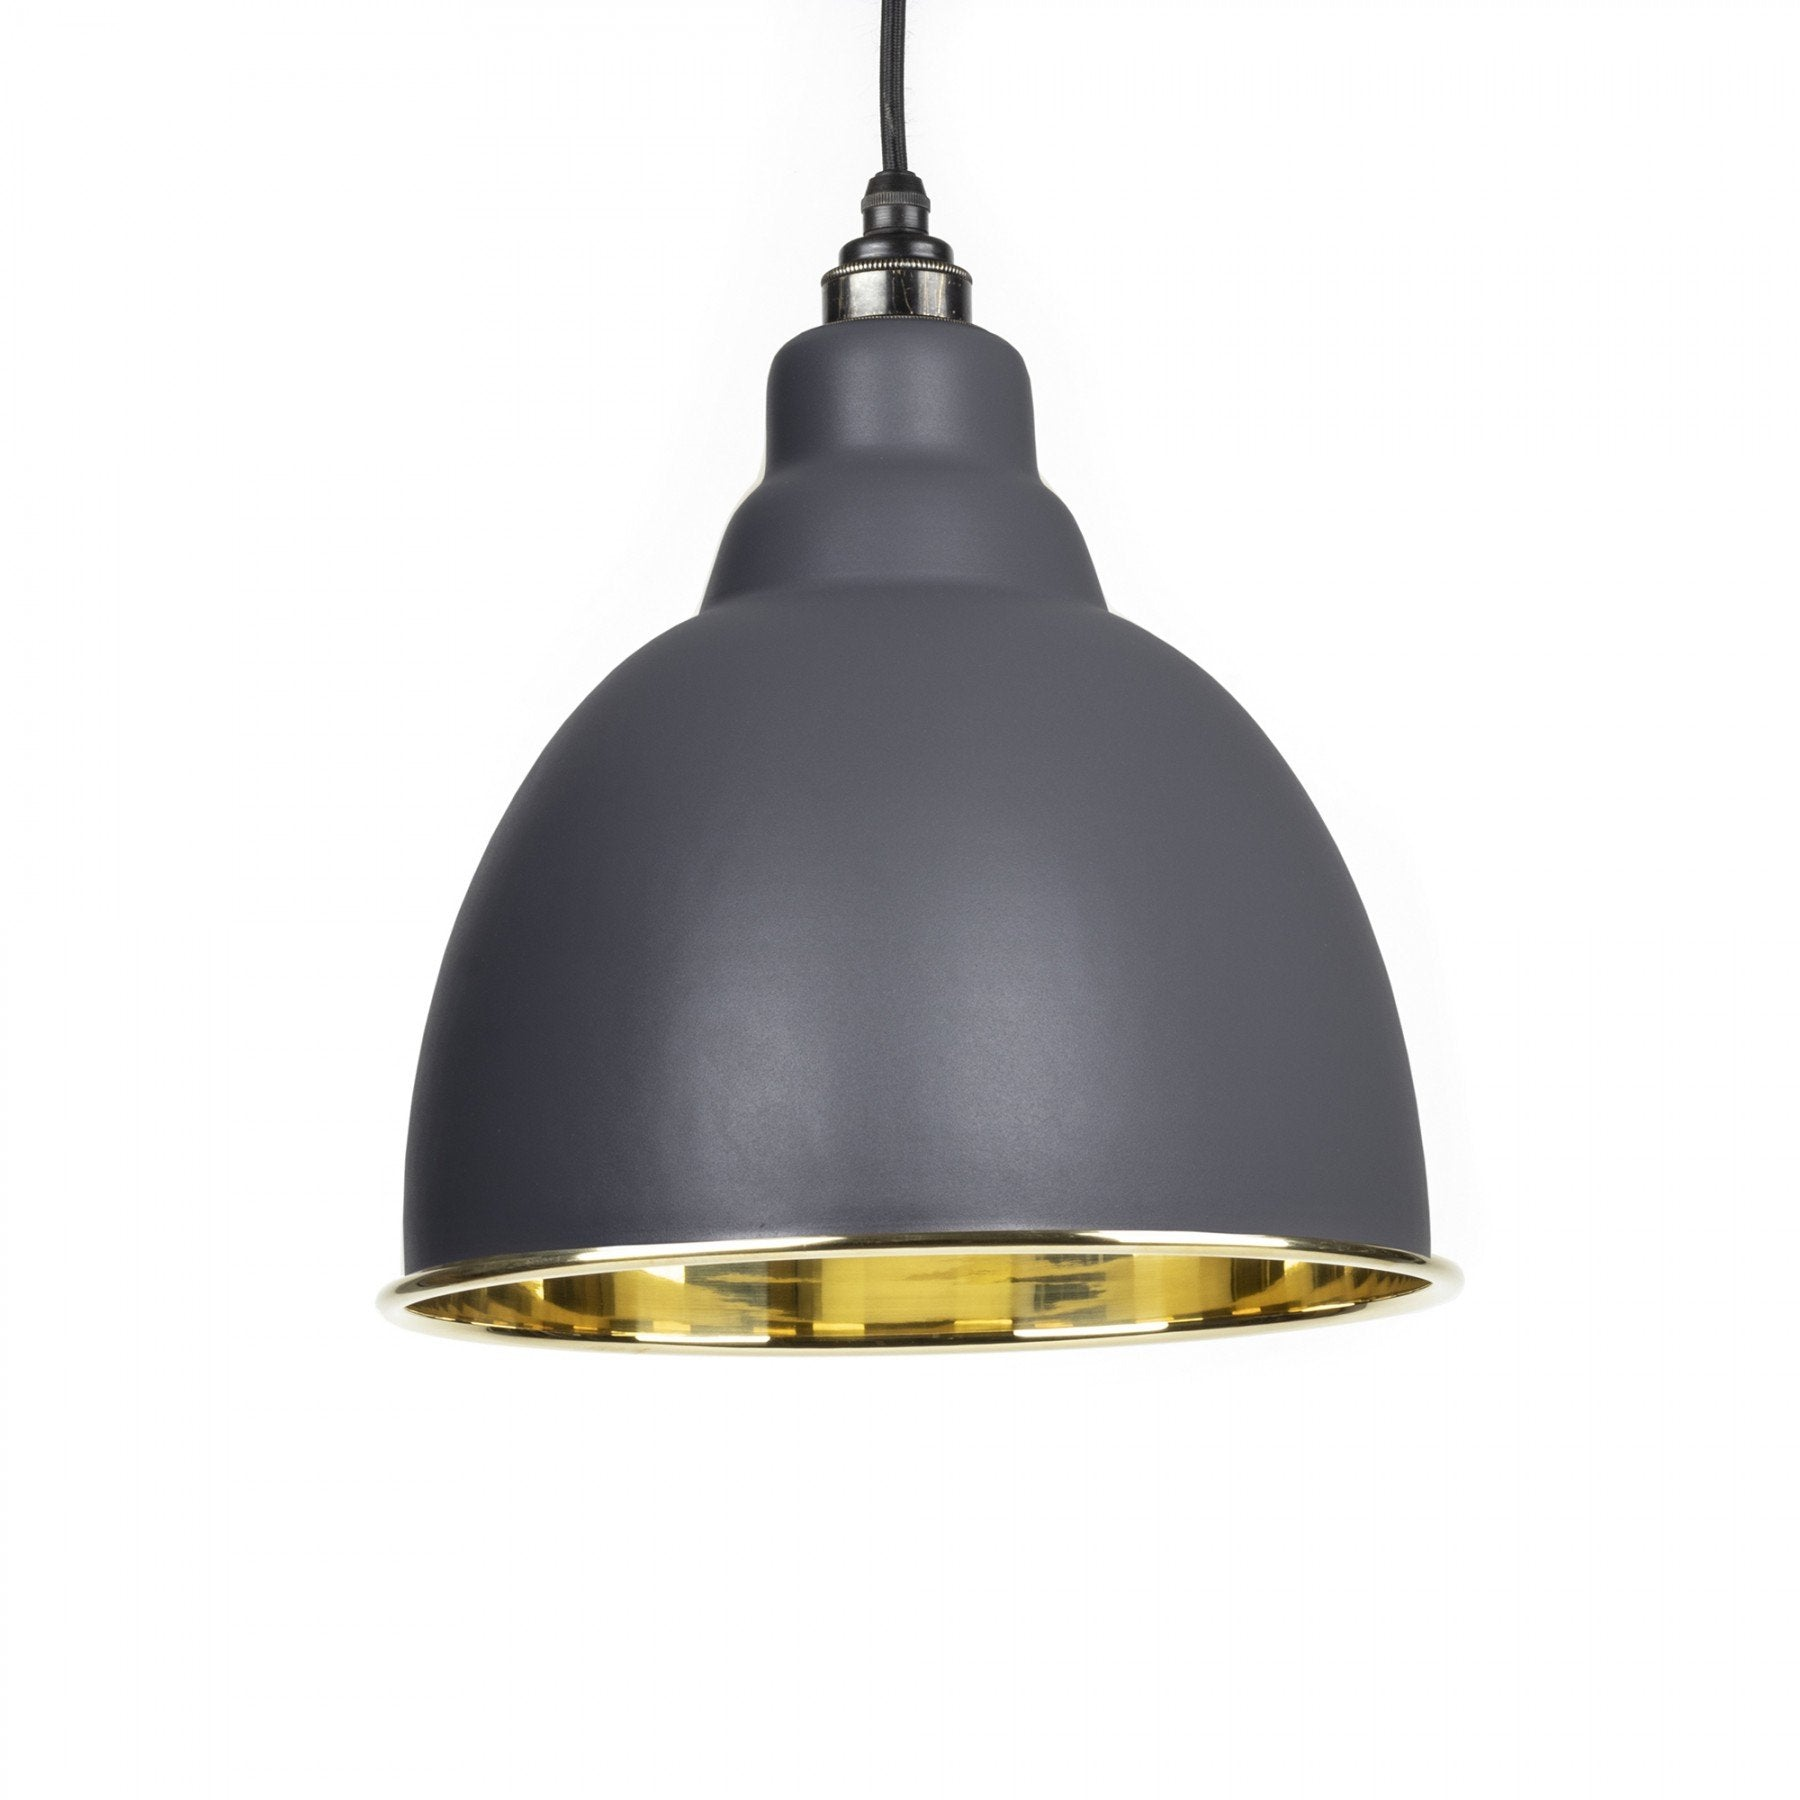 From The Anvil Dark Grey & Smooth Brass Interior Brindley Pendant - No.42 Interiors